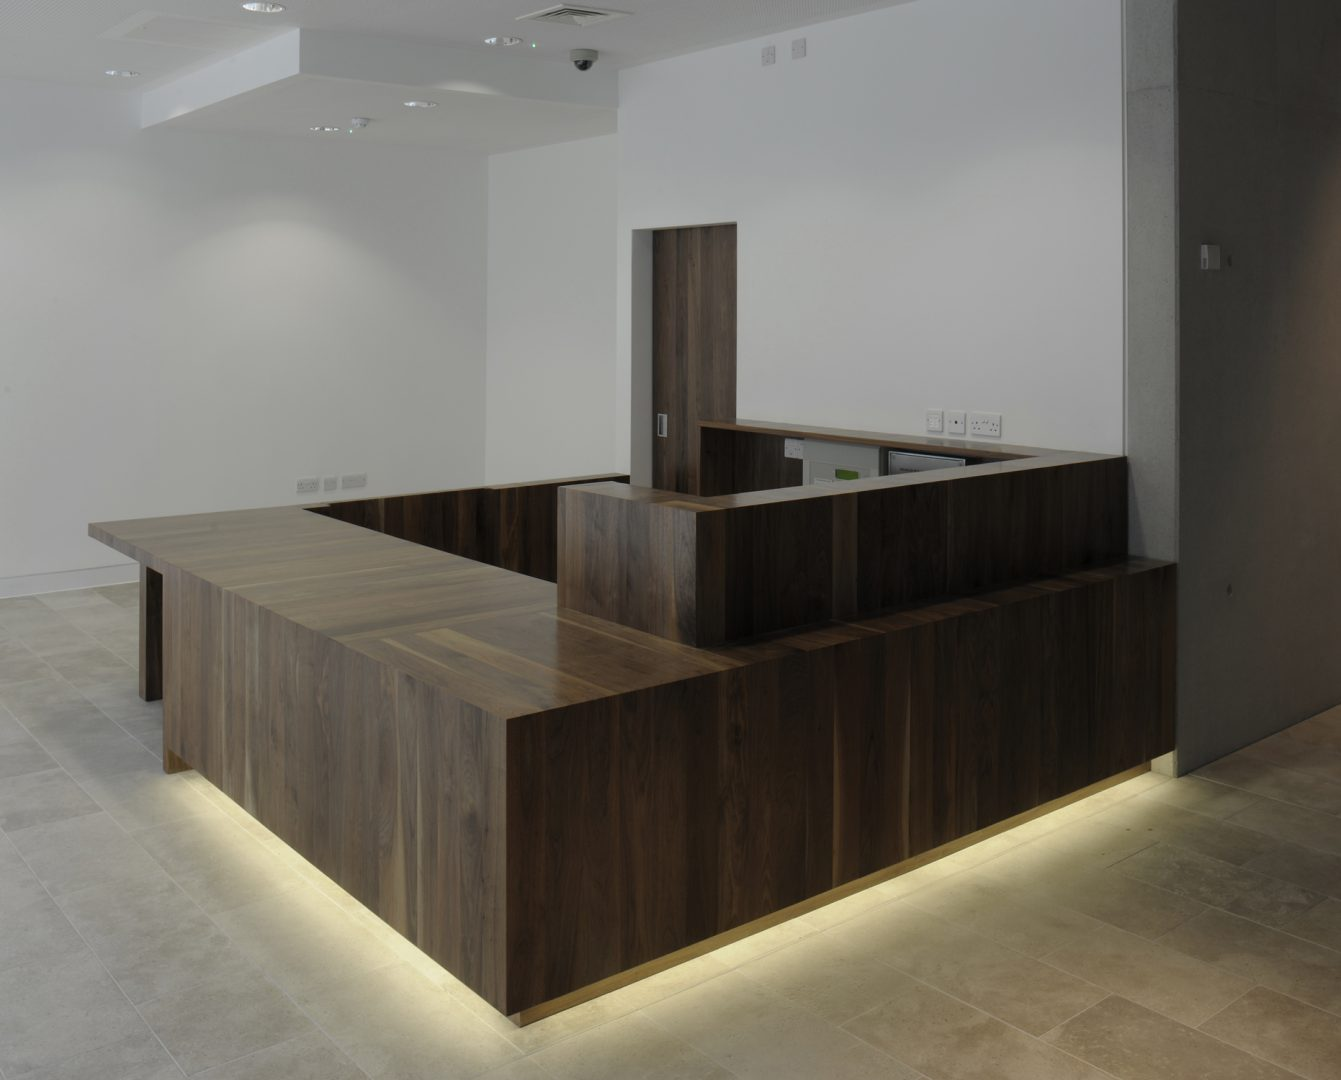 Interior detail of the Novium's main reception desk in Black American walnut